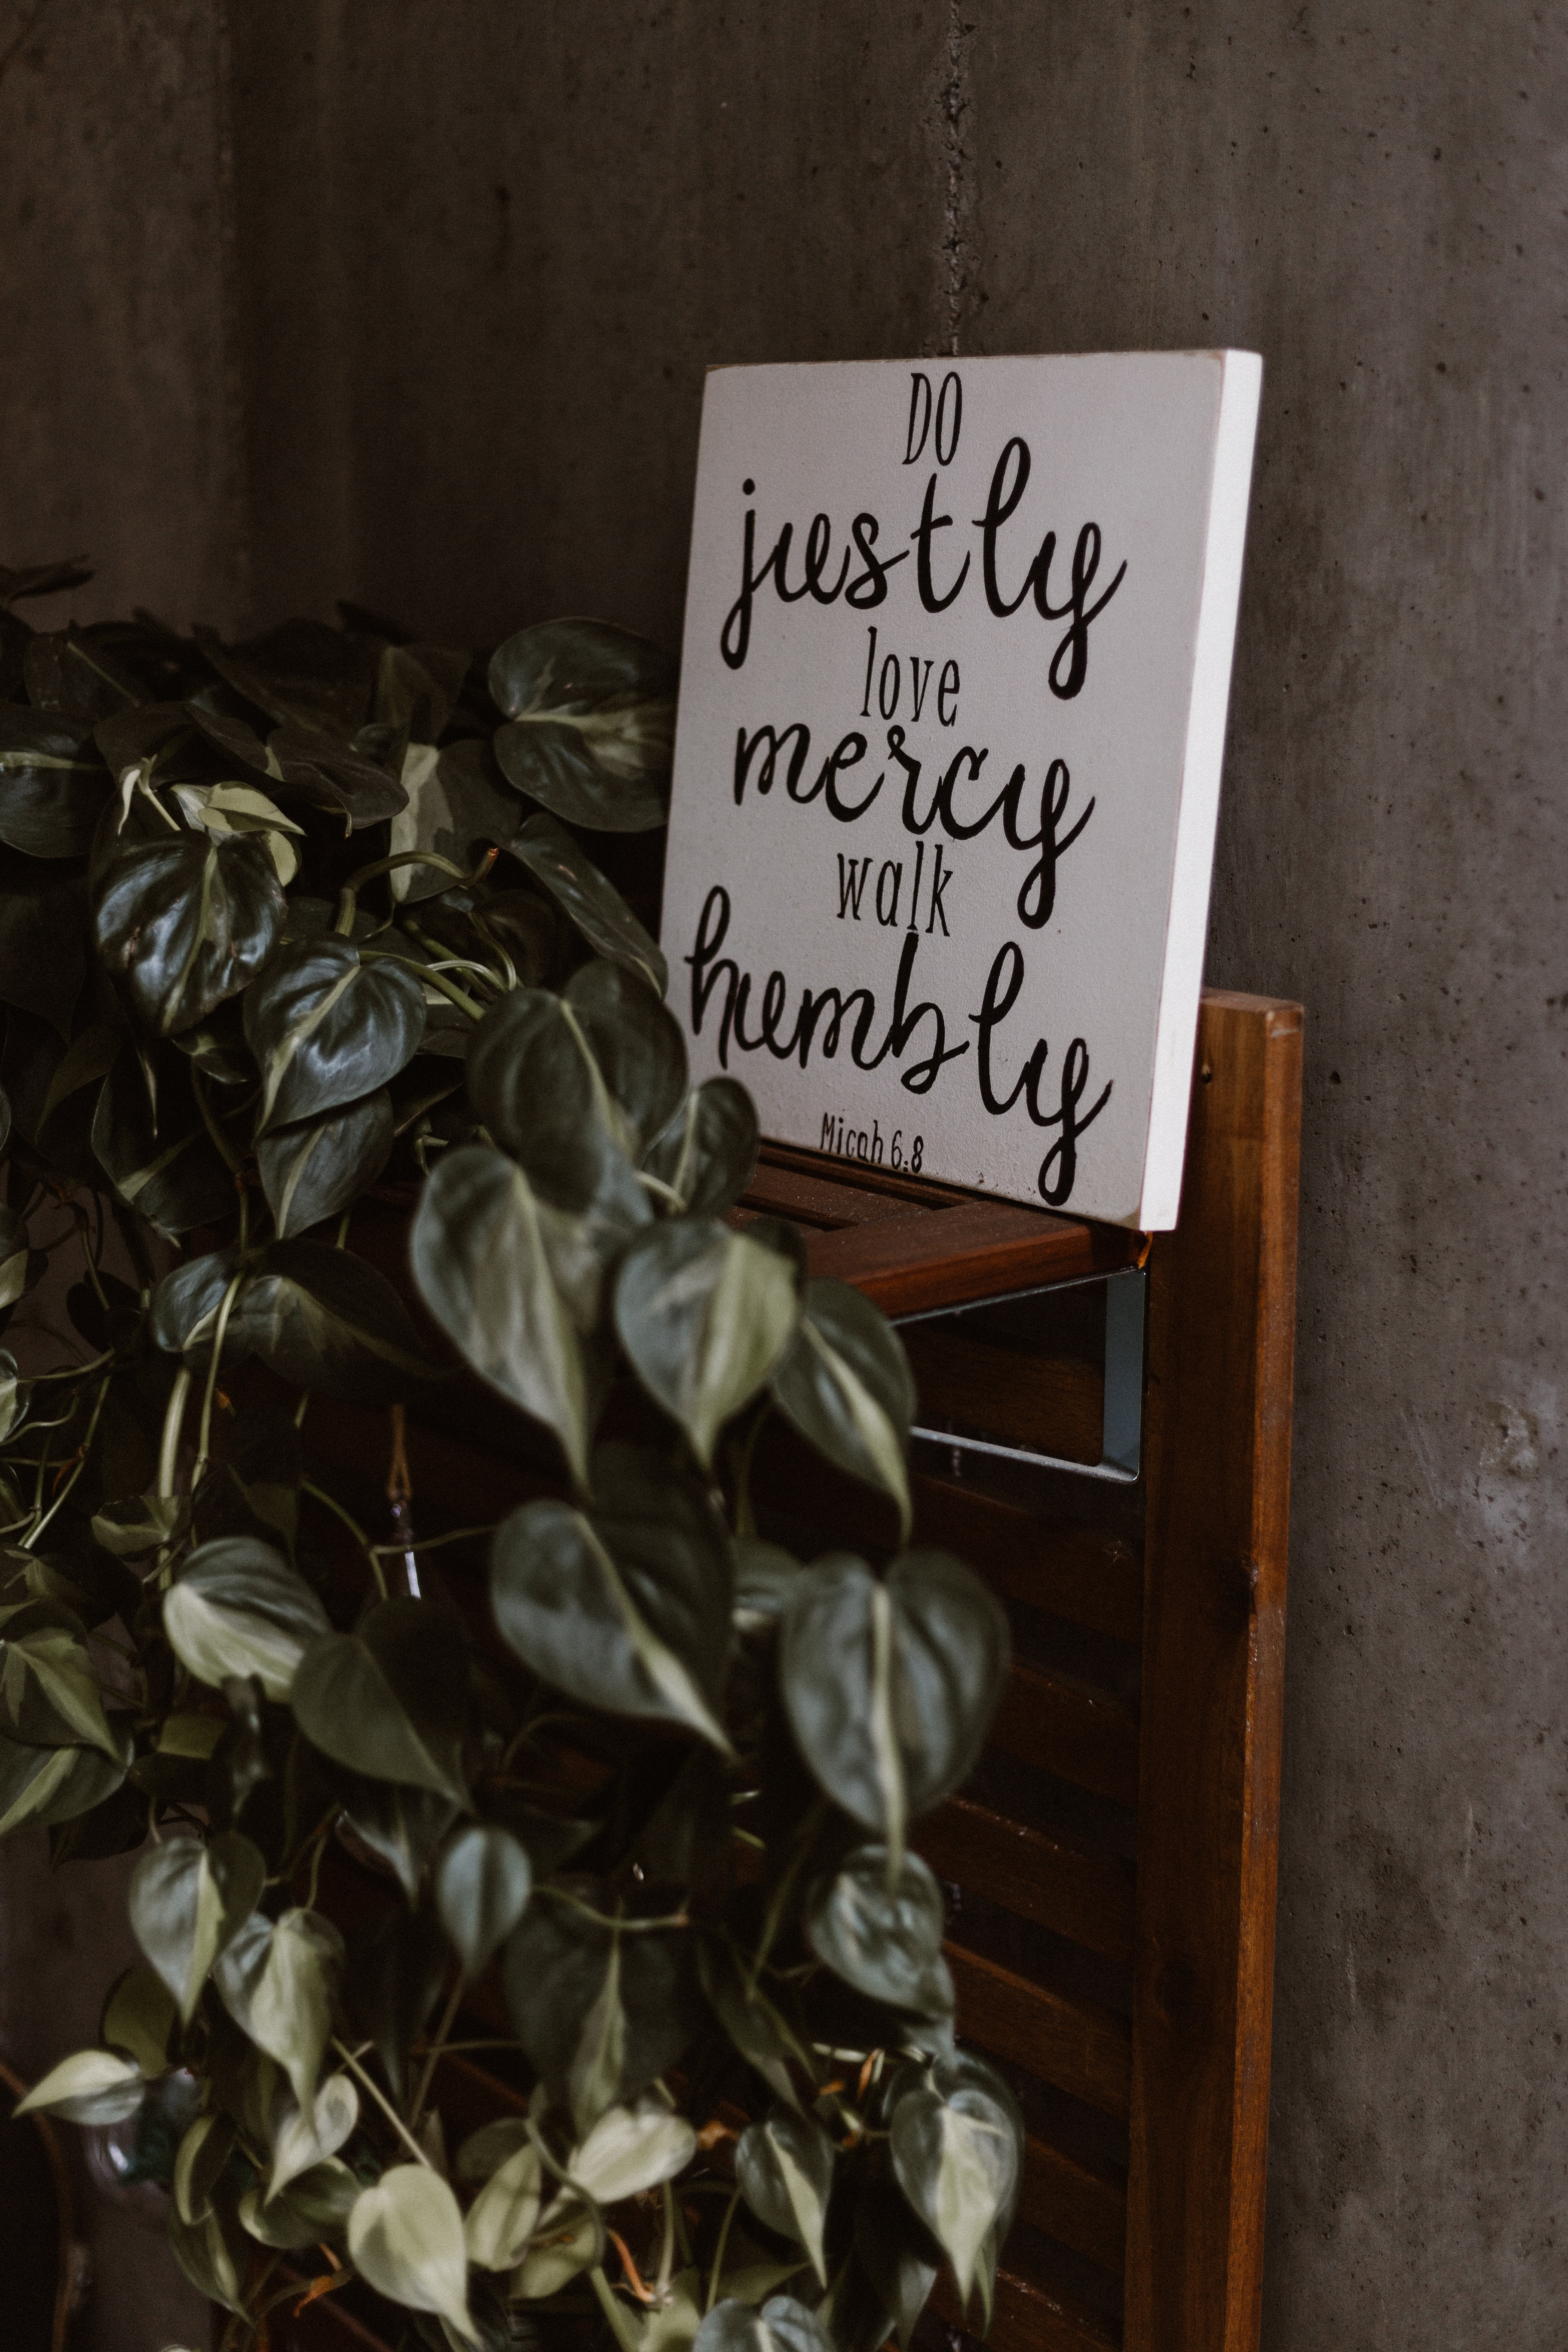 do justly love mercy walk humbly signage leaning on wall beside plants